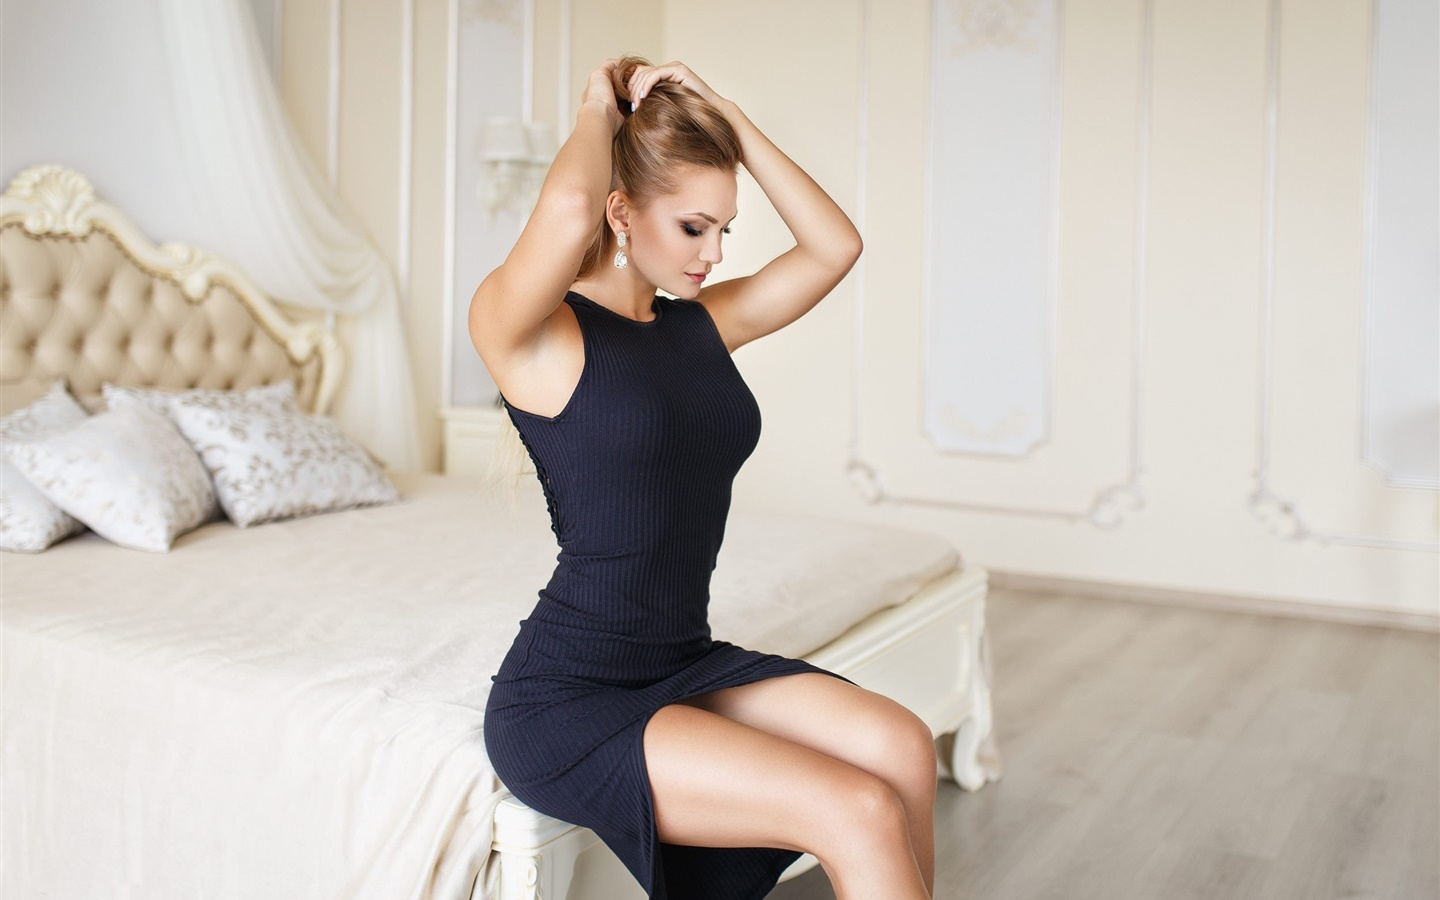 Black dress girl, bedroom, bed, hairstyle 1440x900 wallpaper